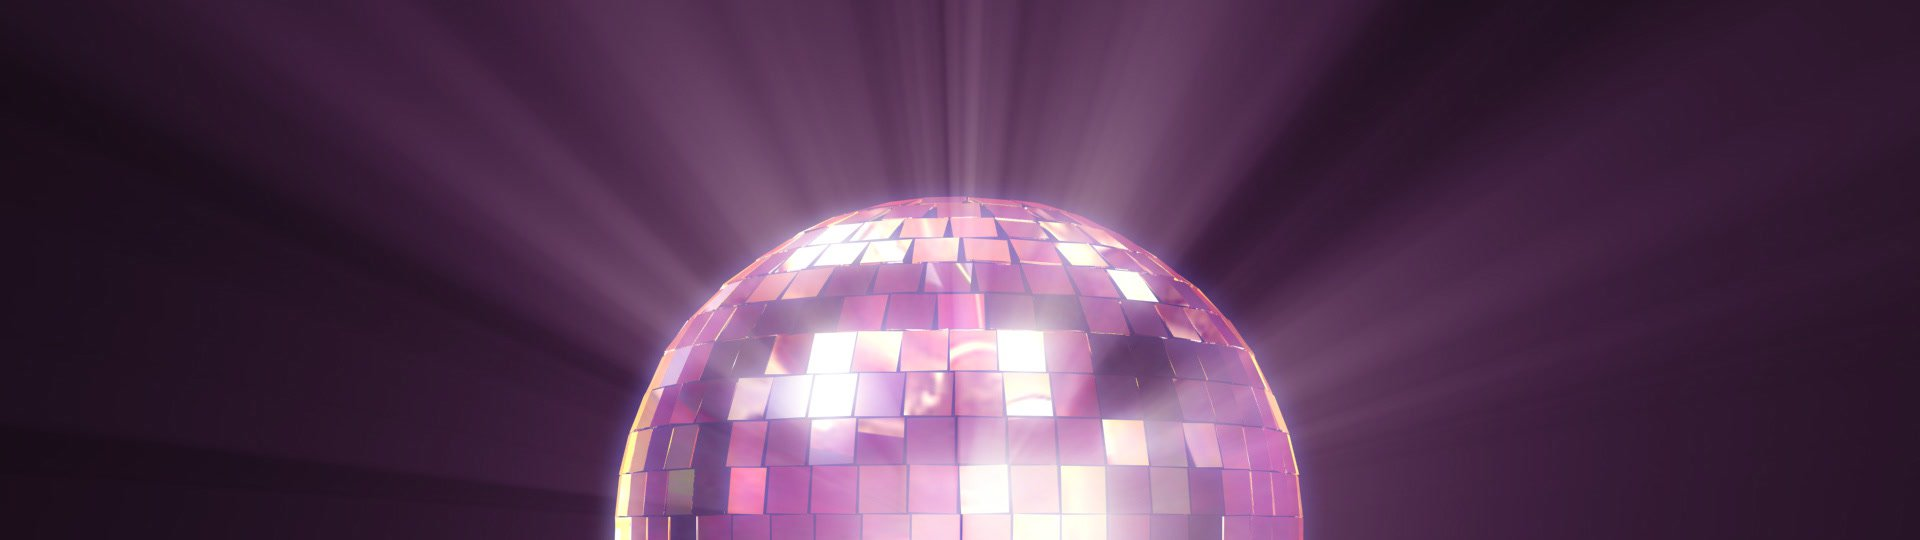 Disco ball | 3D disco ball looped. Realistic size-fixed mirrors near poles. - ID:7103